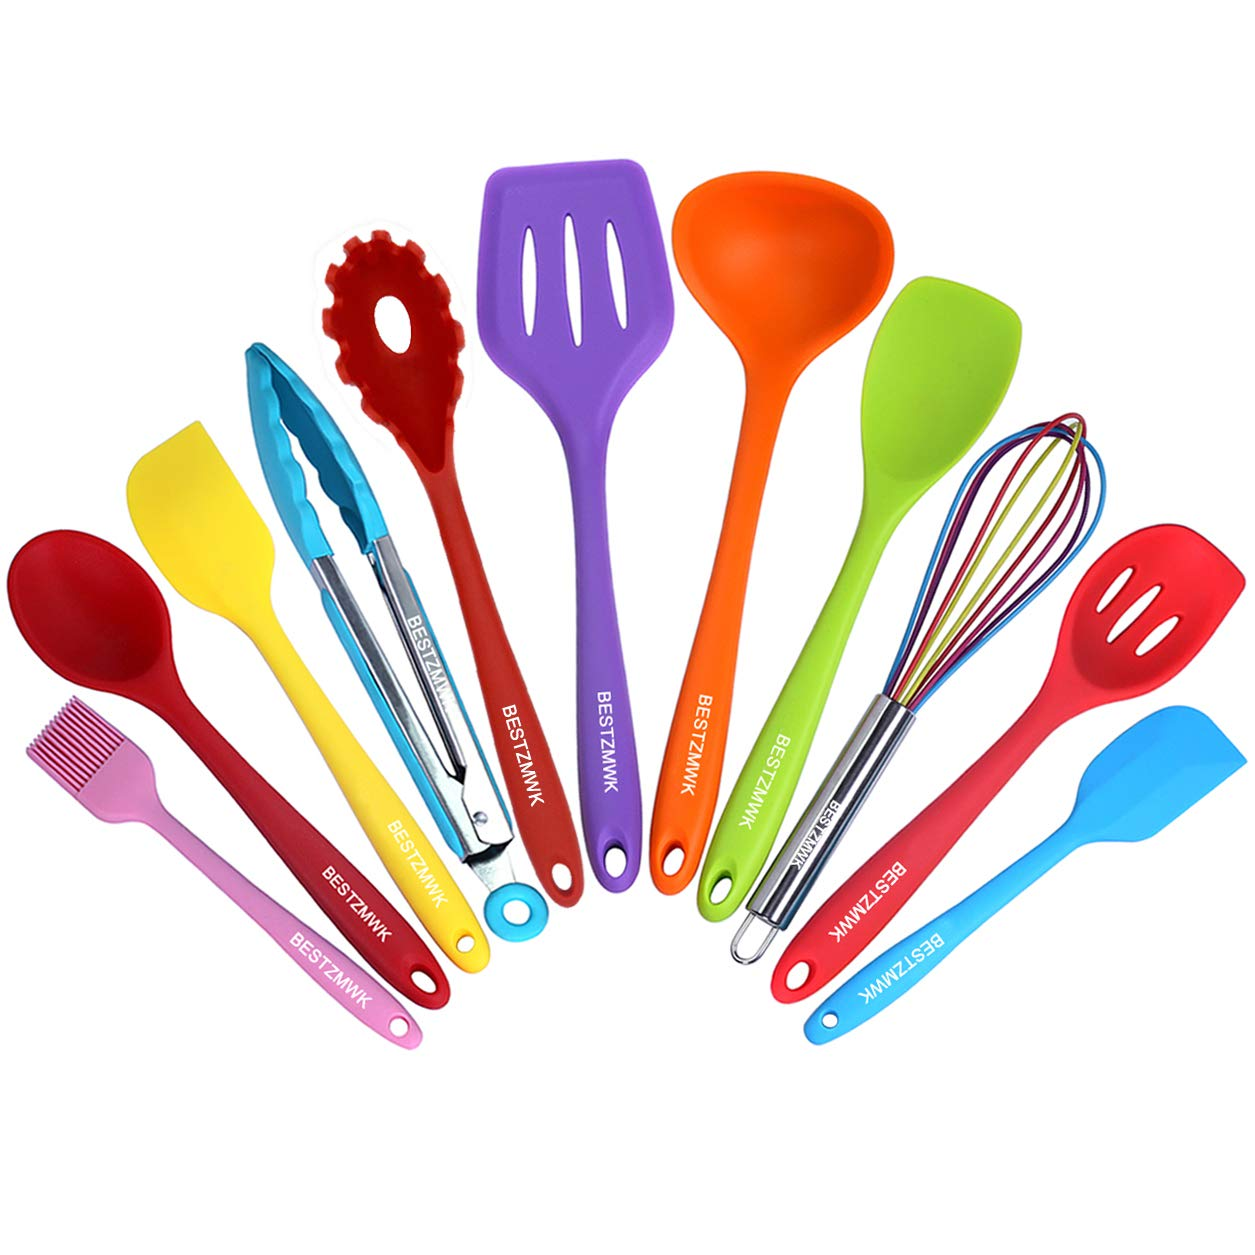 Top 8 Best Cooking Utensils 5e 2020 - Buyer's Guide 5